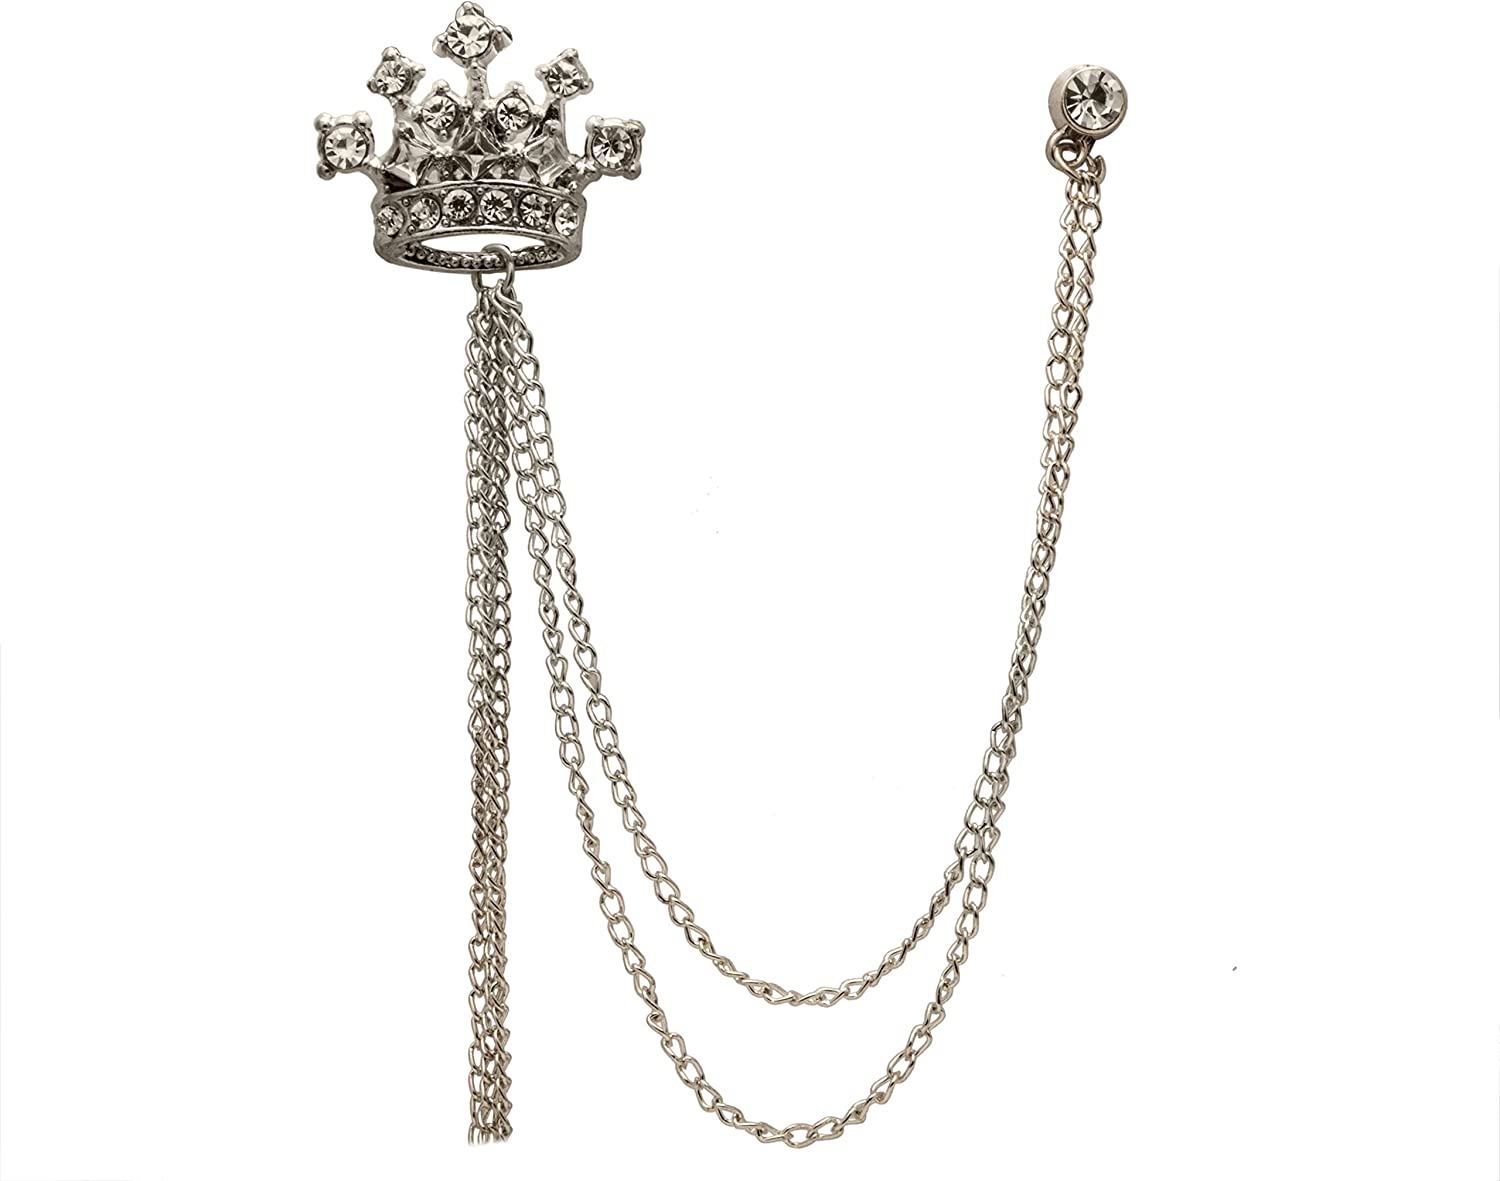 Knighthood Silver Crystal Crown With Hanging Chain Lapel Pin Brooch for Men